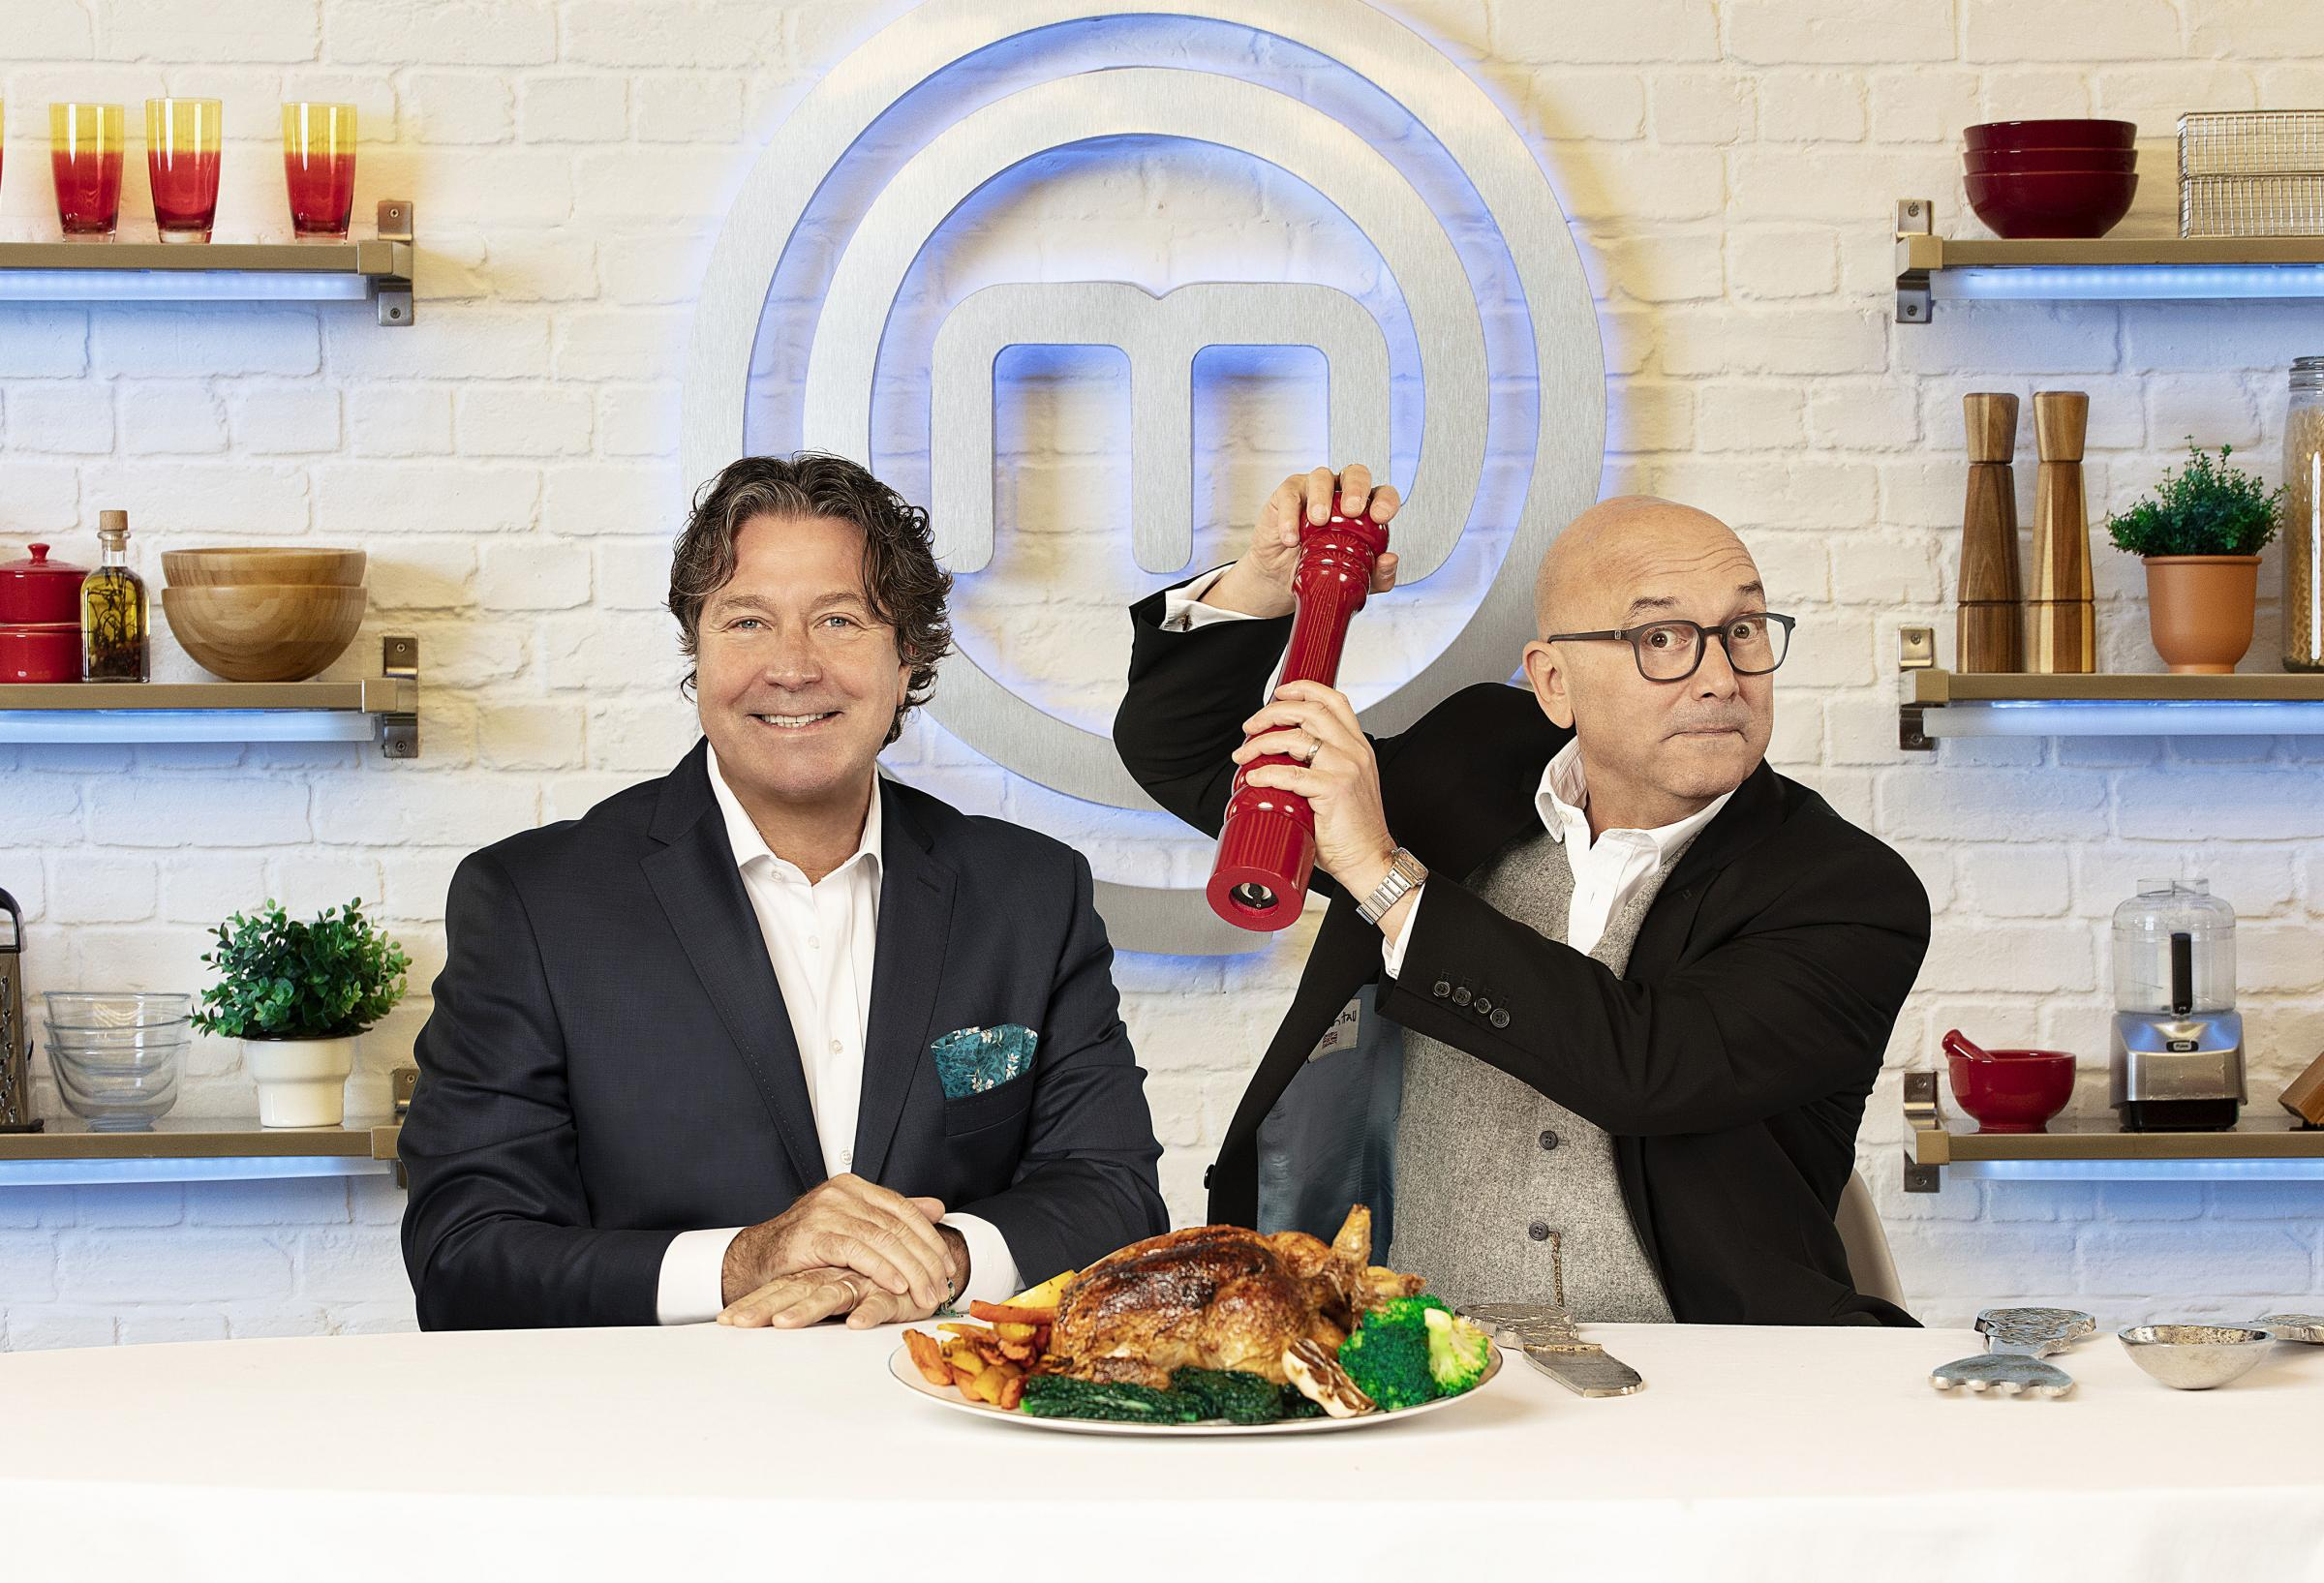 John Torode and Gregg Wallace are back for MasterChef